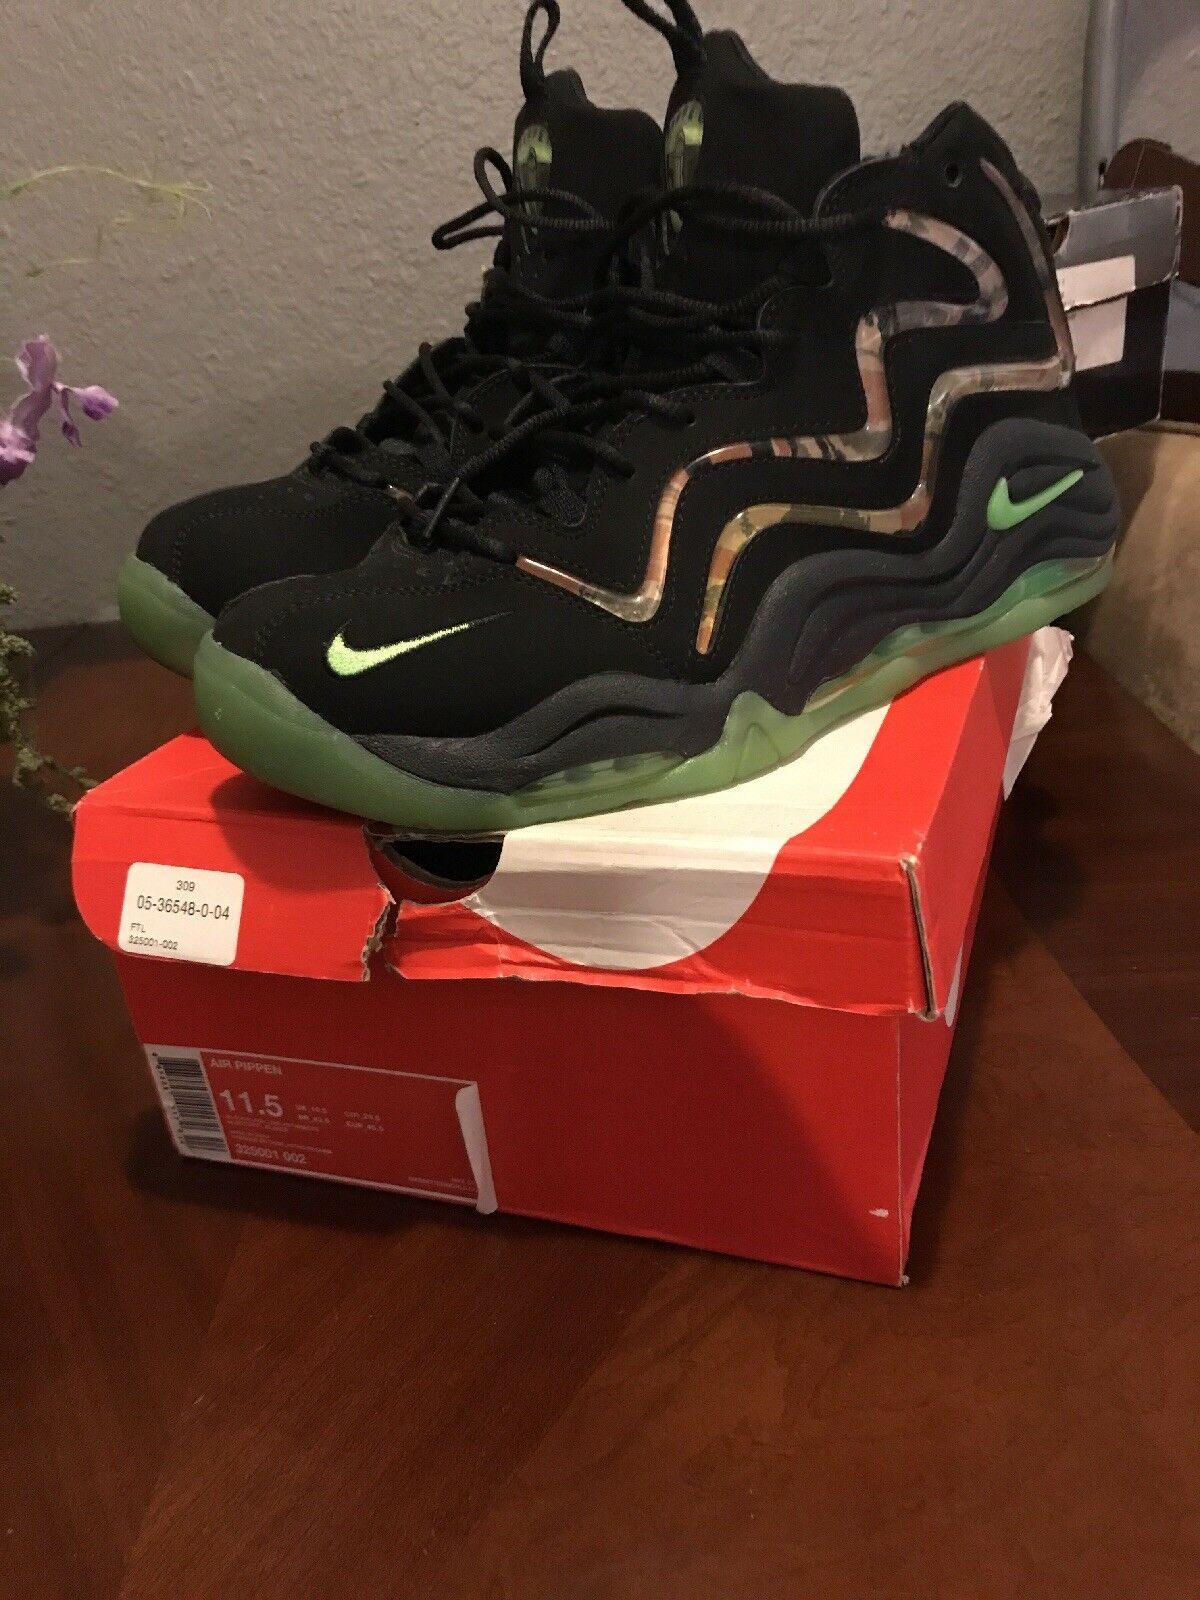 Nike Air Pippen Camo  Cheap and fashionable